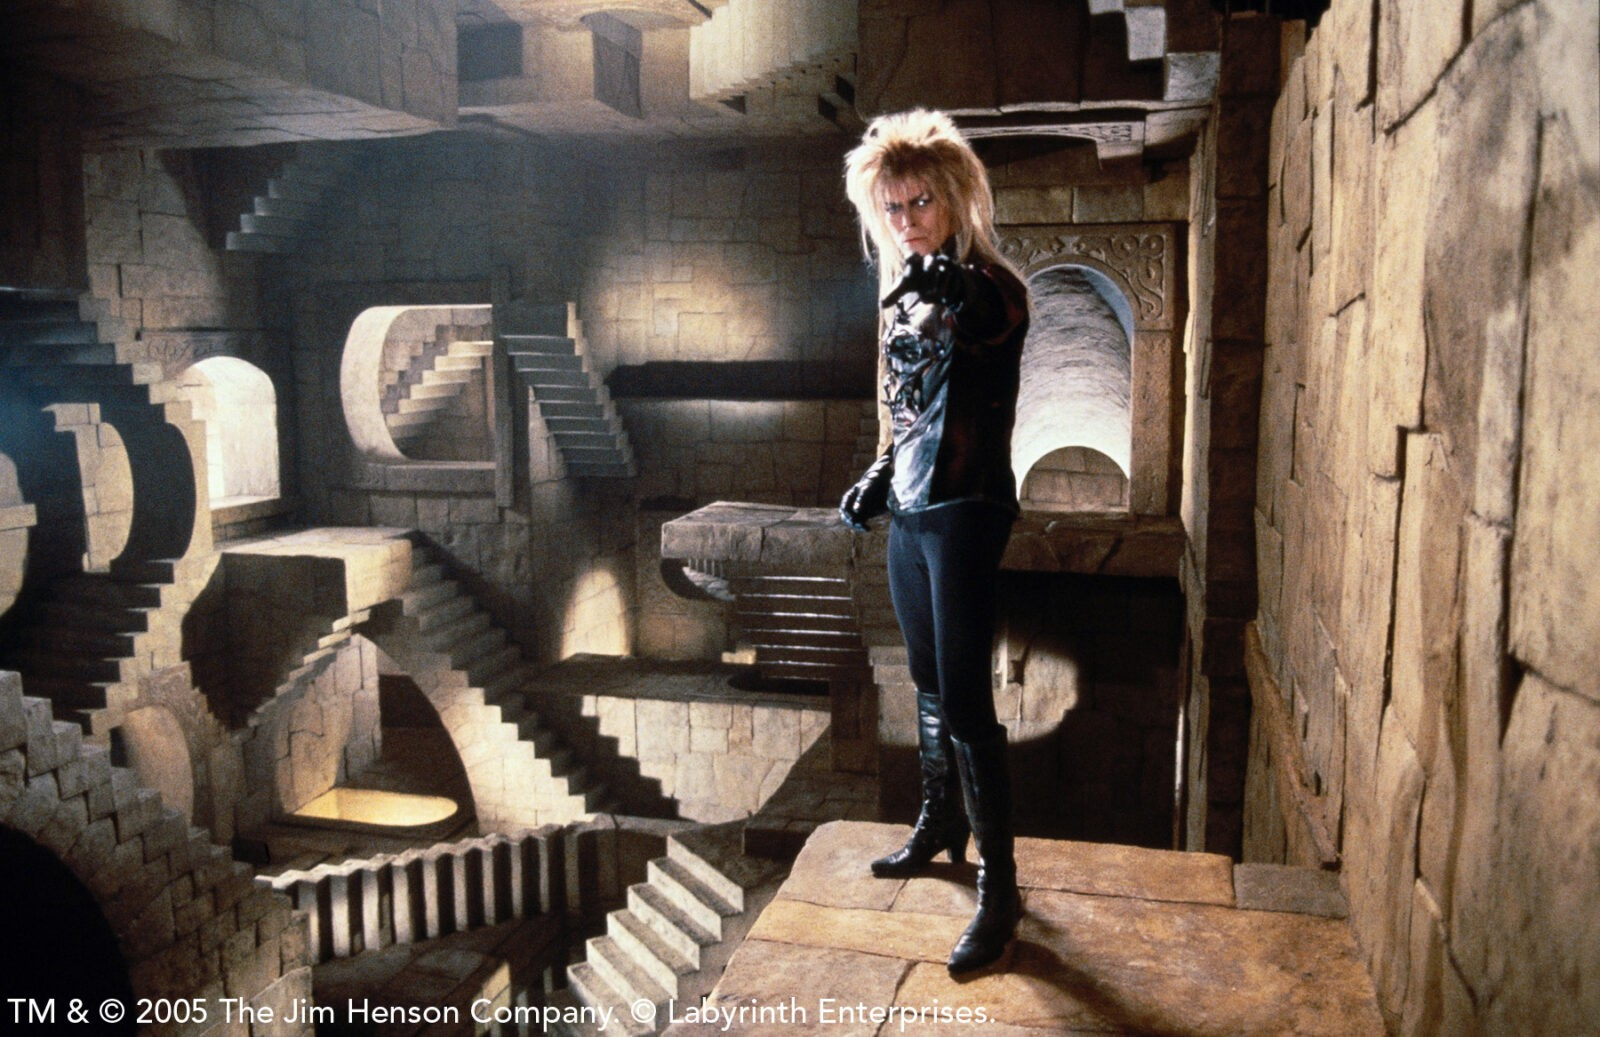 Whatever Happened to Jareth the Goblin King?